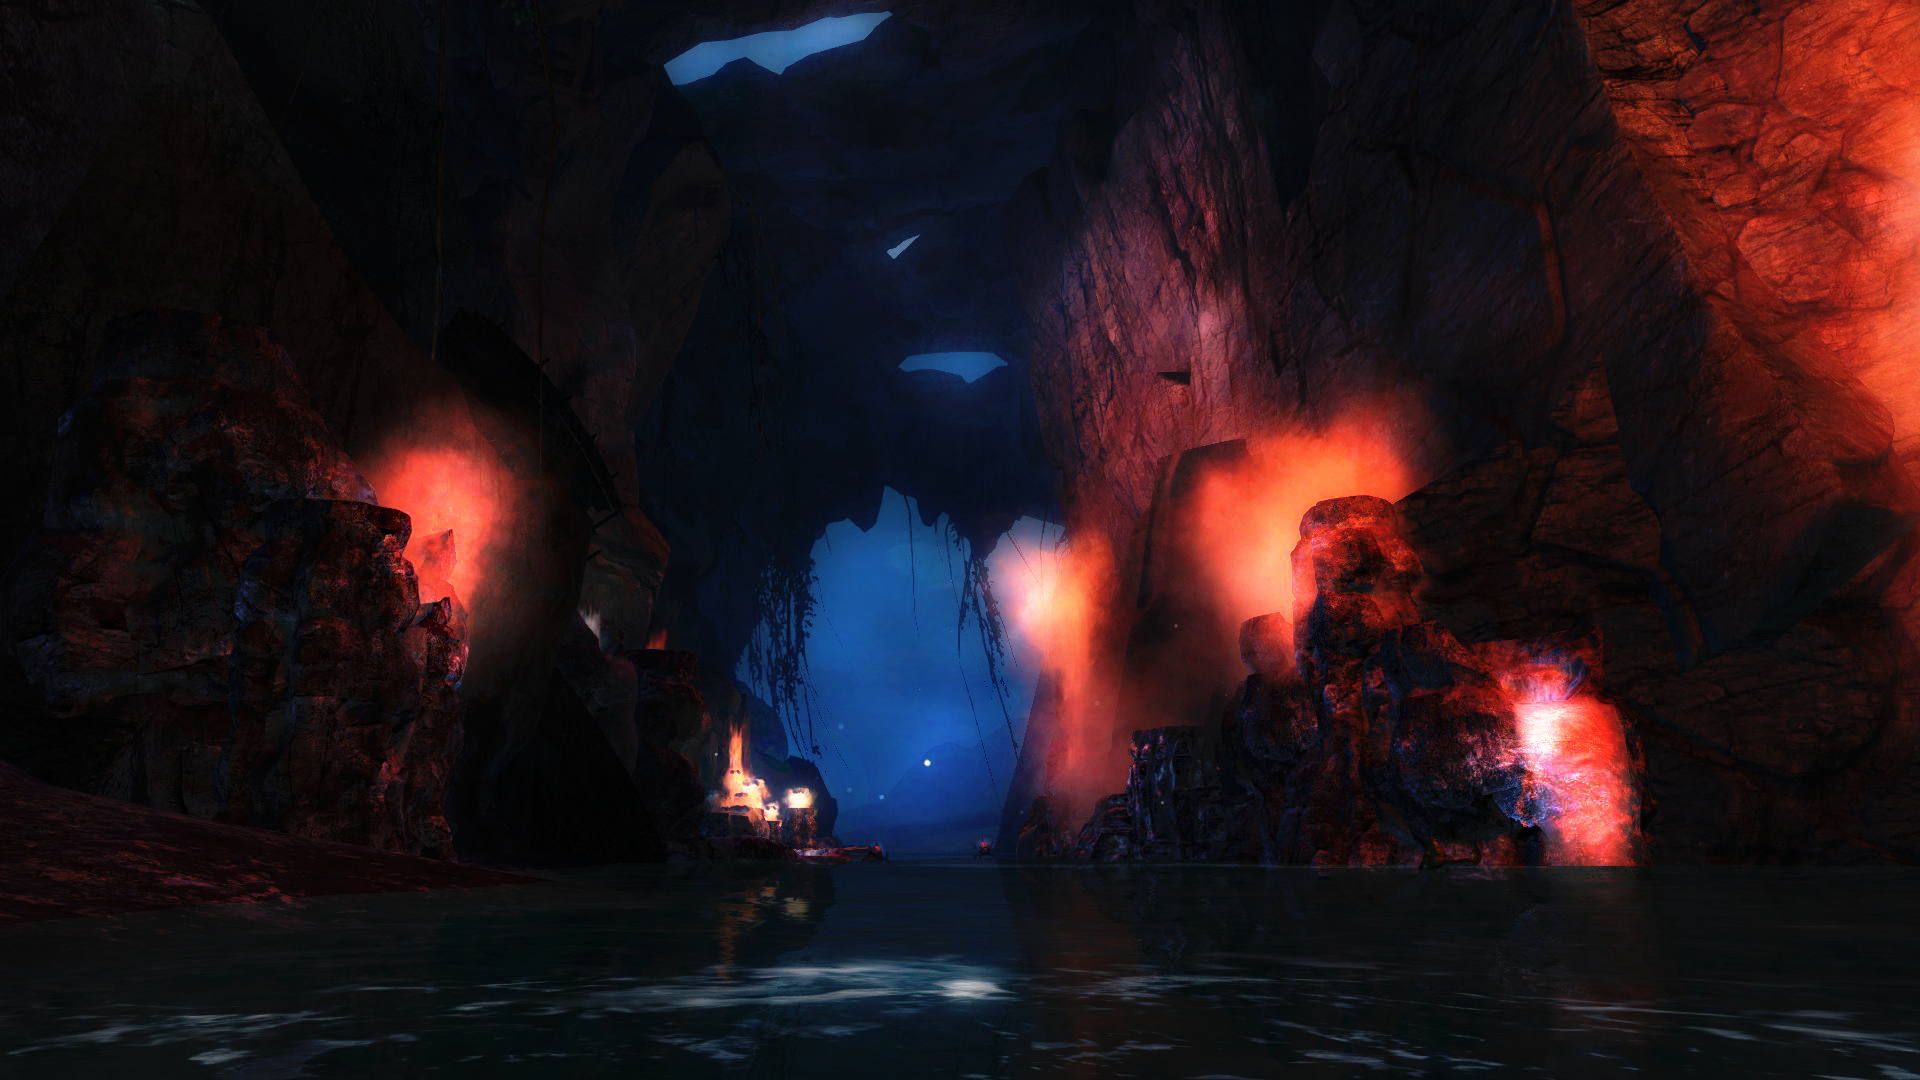 Guild Wars 2 - Karka's Cove by HappyKnight